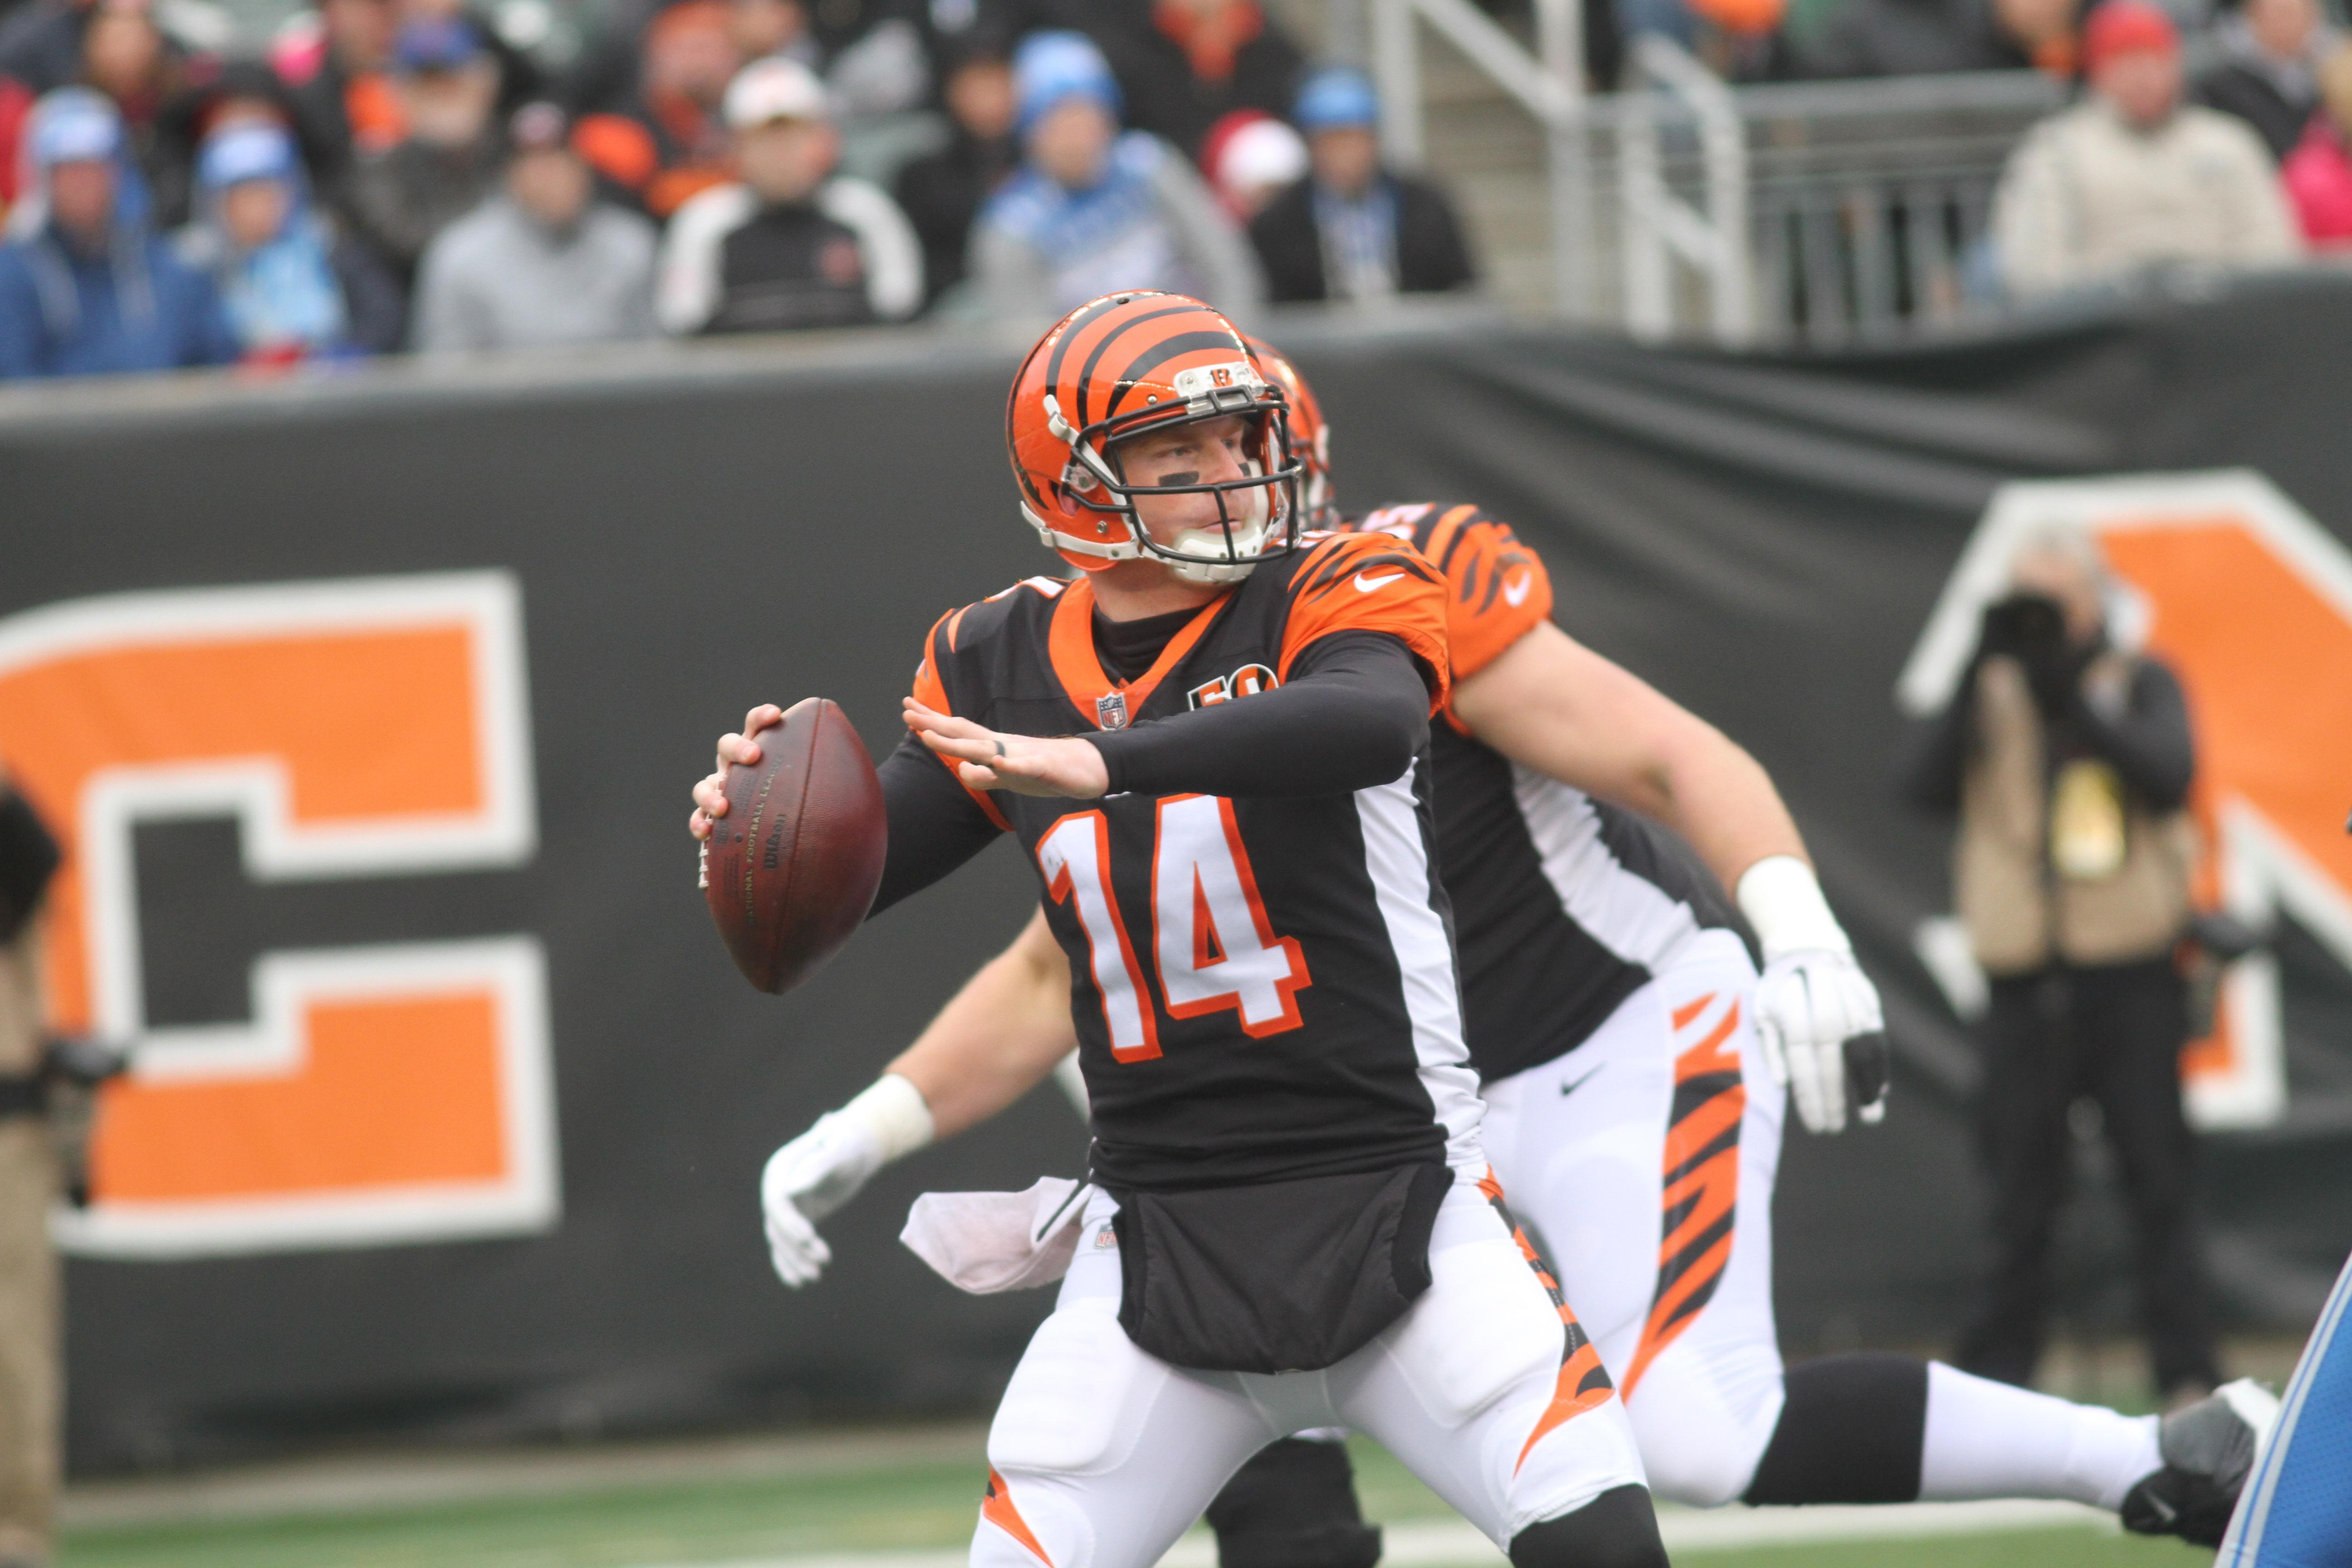 The Bengals eliminated the Lions from playoff contention Sunday at Paul Brown Stadium (WKRC/Tony Tribble)